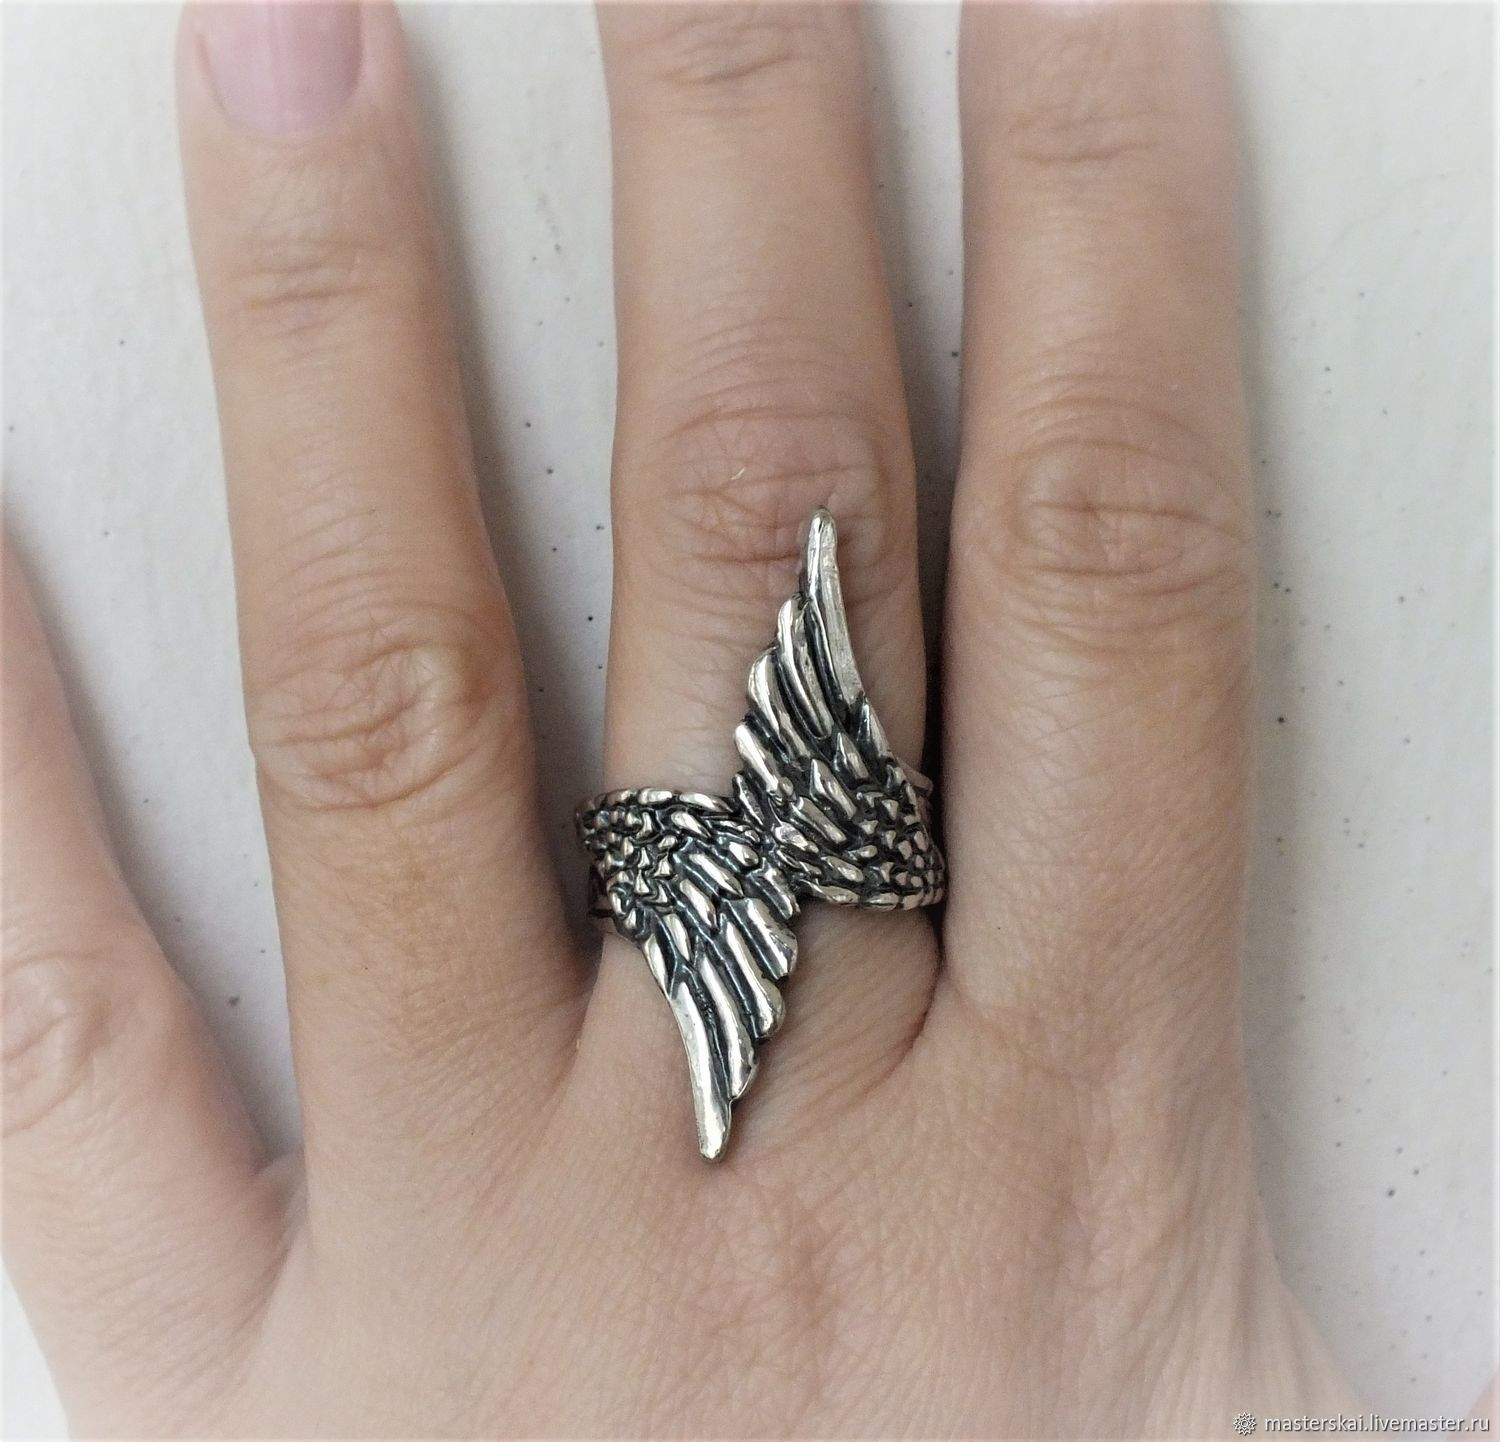 Ring: ' Wings ' - 925 silver, Rings, Moscow,  Фото №1